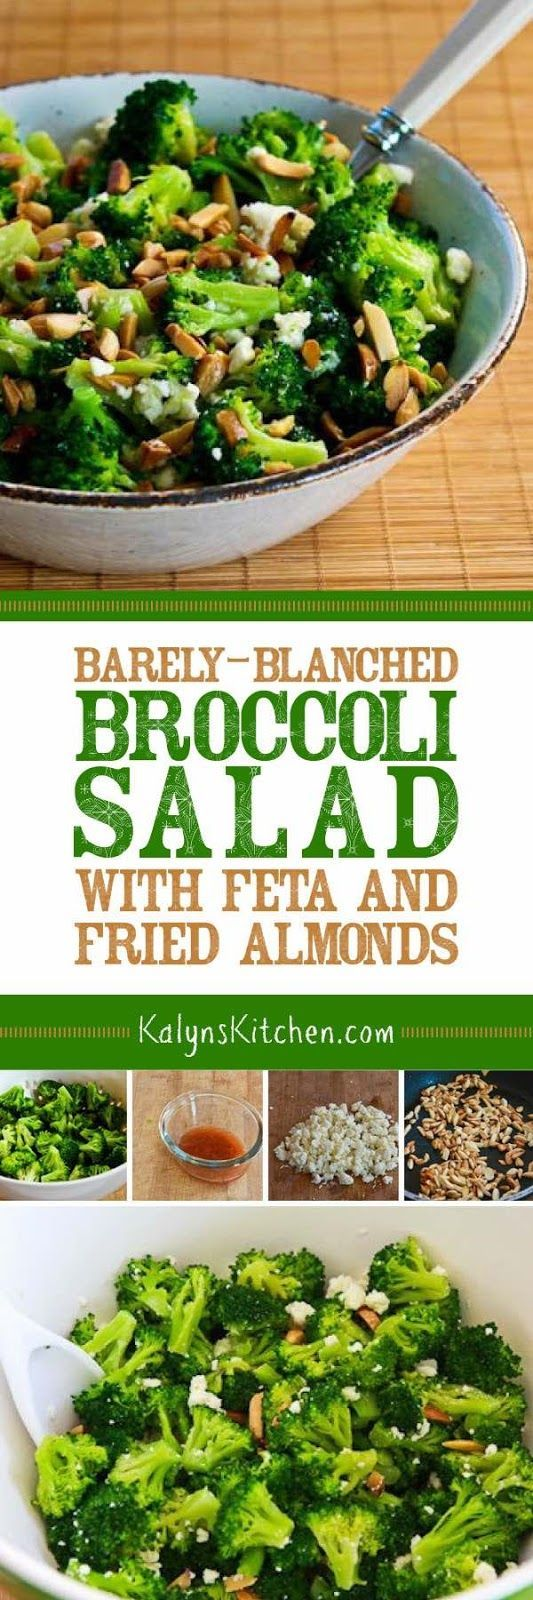 Barely-Blanched Broccoli Salad with Feta and Fried Almonds is a unique and tasty side dish any time of year, and this tasty meatless salad is low-carb, low-glycemic, gluten-free, and South Beach Diet Phase One. [found on http://KalynsKitchen.com]